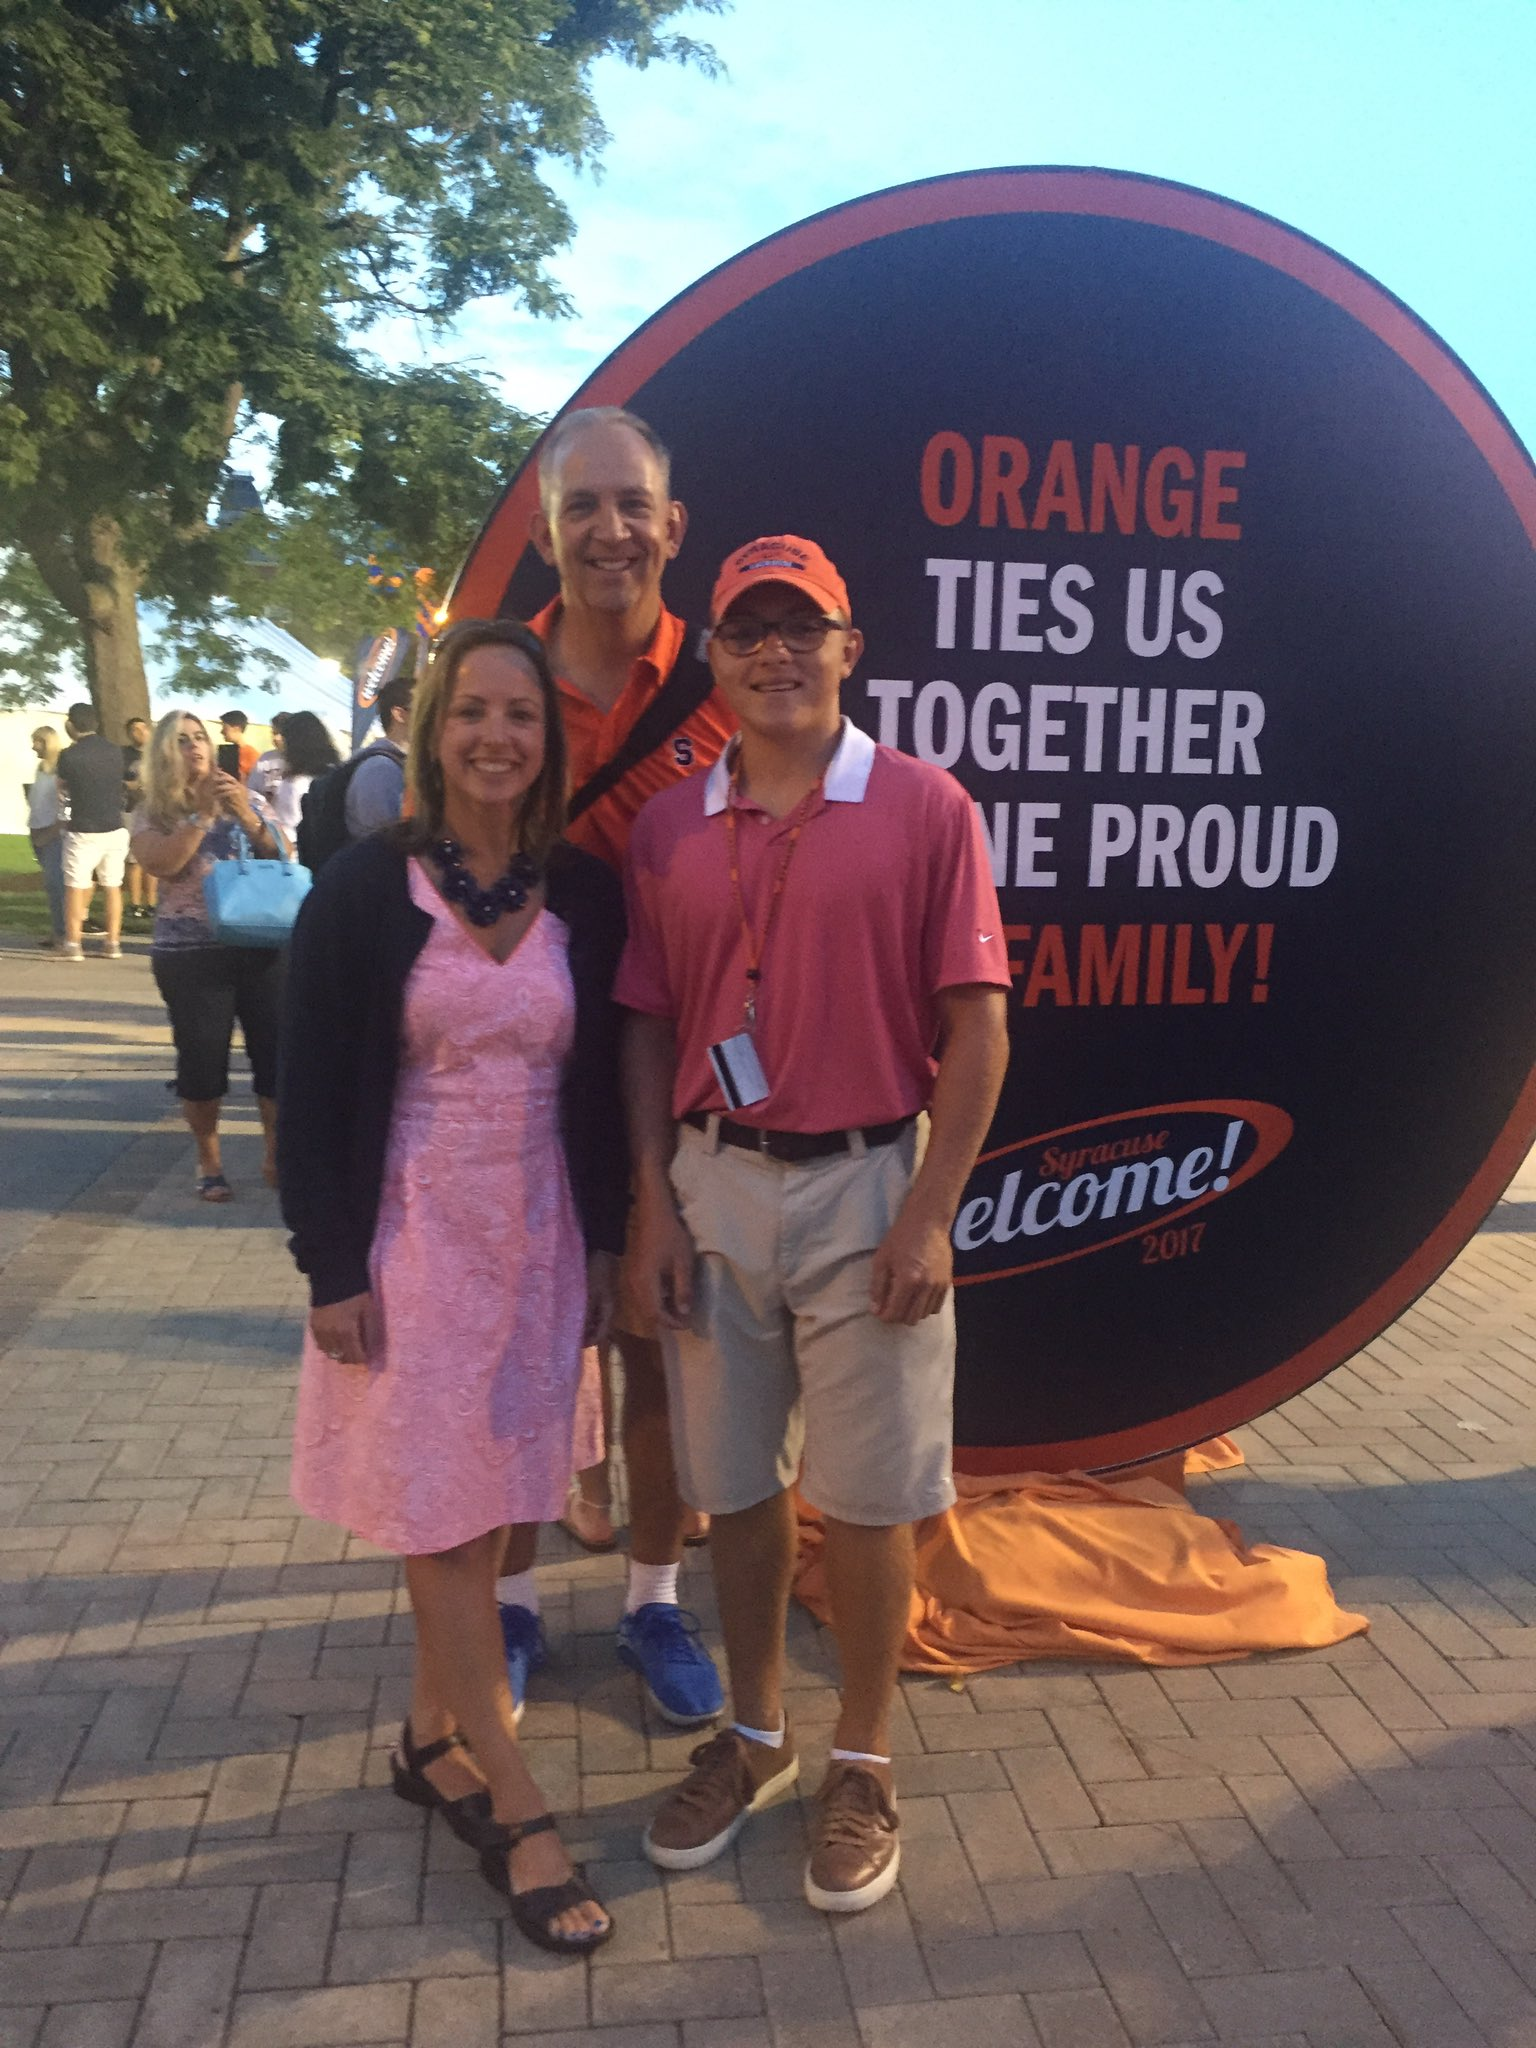 Great day at @SyracuseU for #SUWelcome & convocation.  Nicely done @SUFYTP!  Rolling out the #Orange carpet 4 new students & families ❤️🍊👍 https://t.co/wMY5JnLpqf